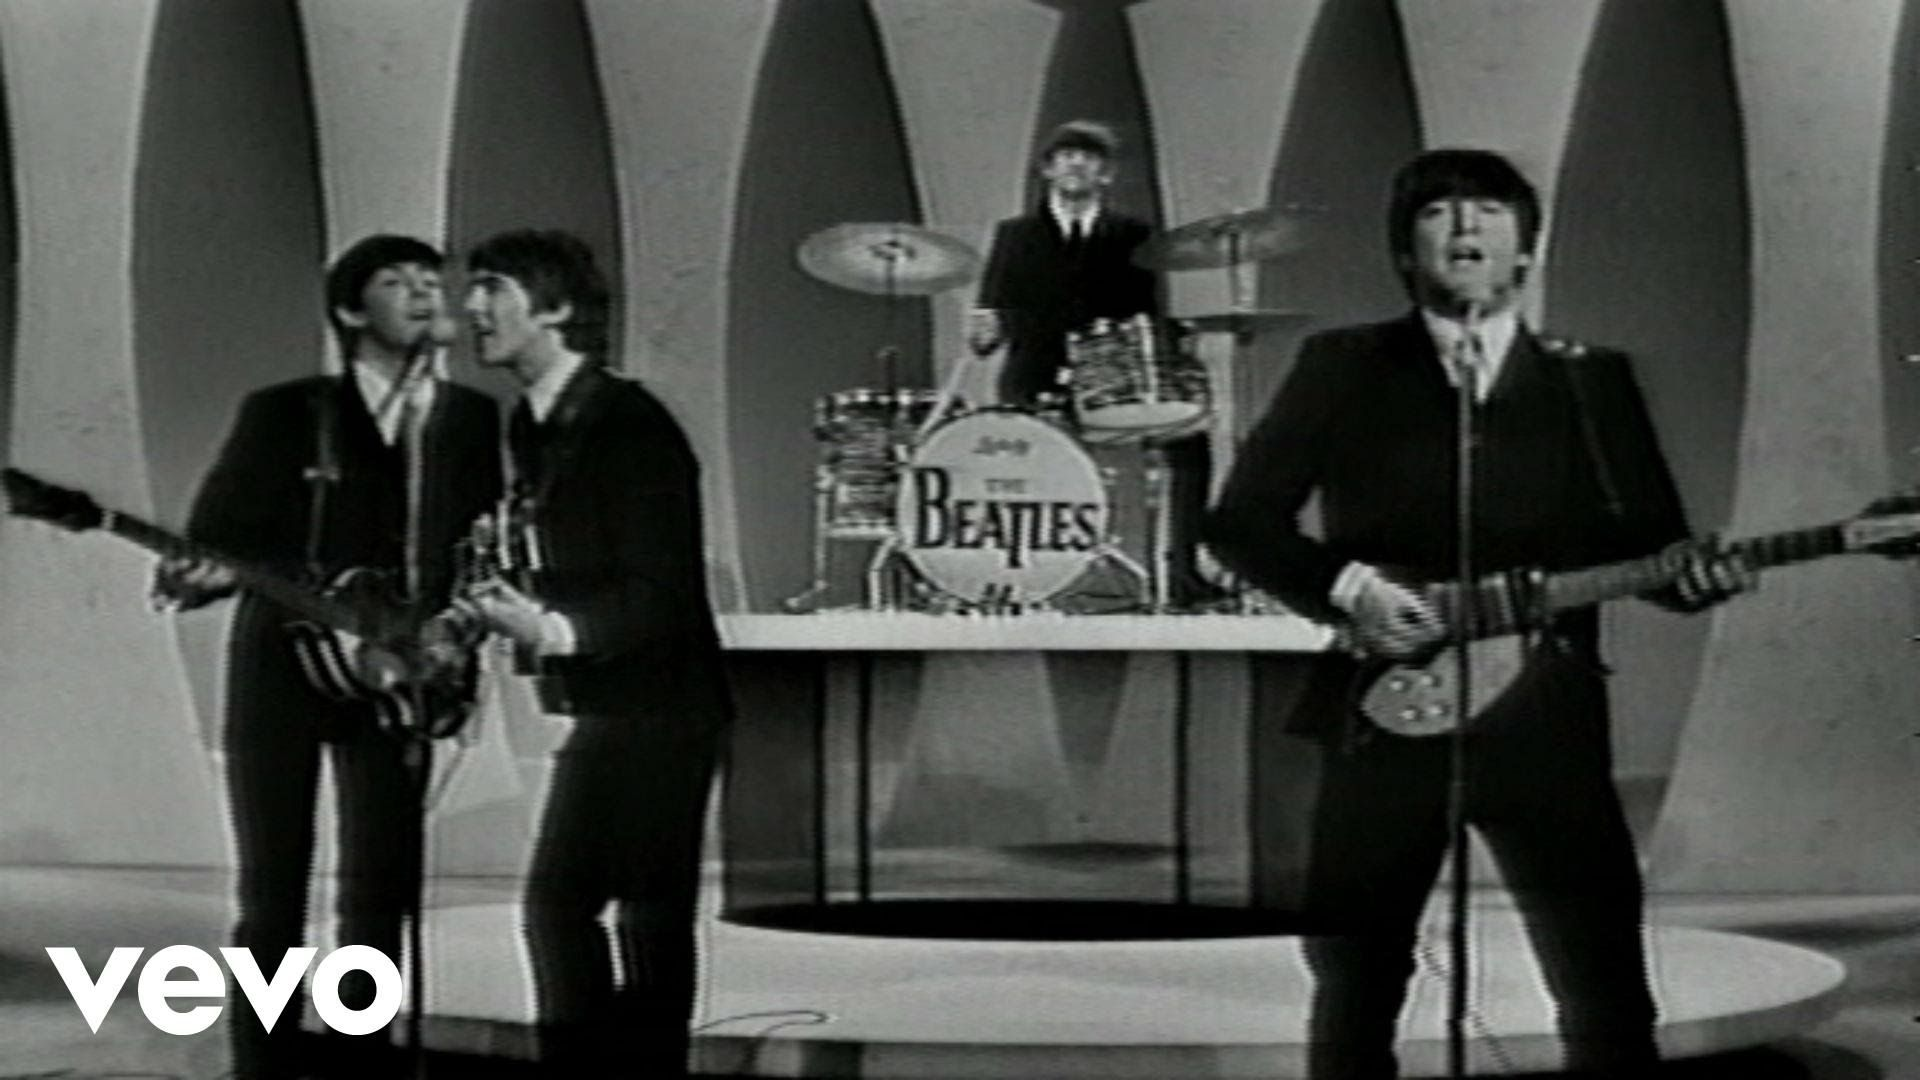 The Beatles I Want To Hold Your Hand Performed Live On The Ed Sullivan Show 2 9 64 I Want To Hold You The Beatles The Ed Sullivan Show Twist And Shout